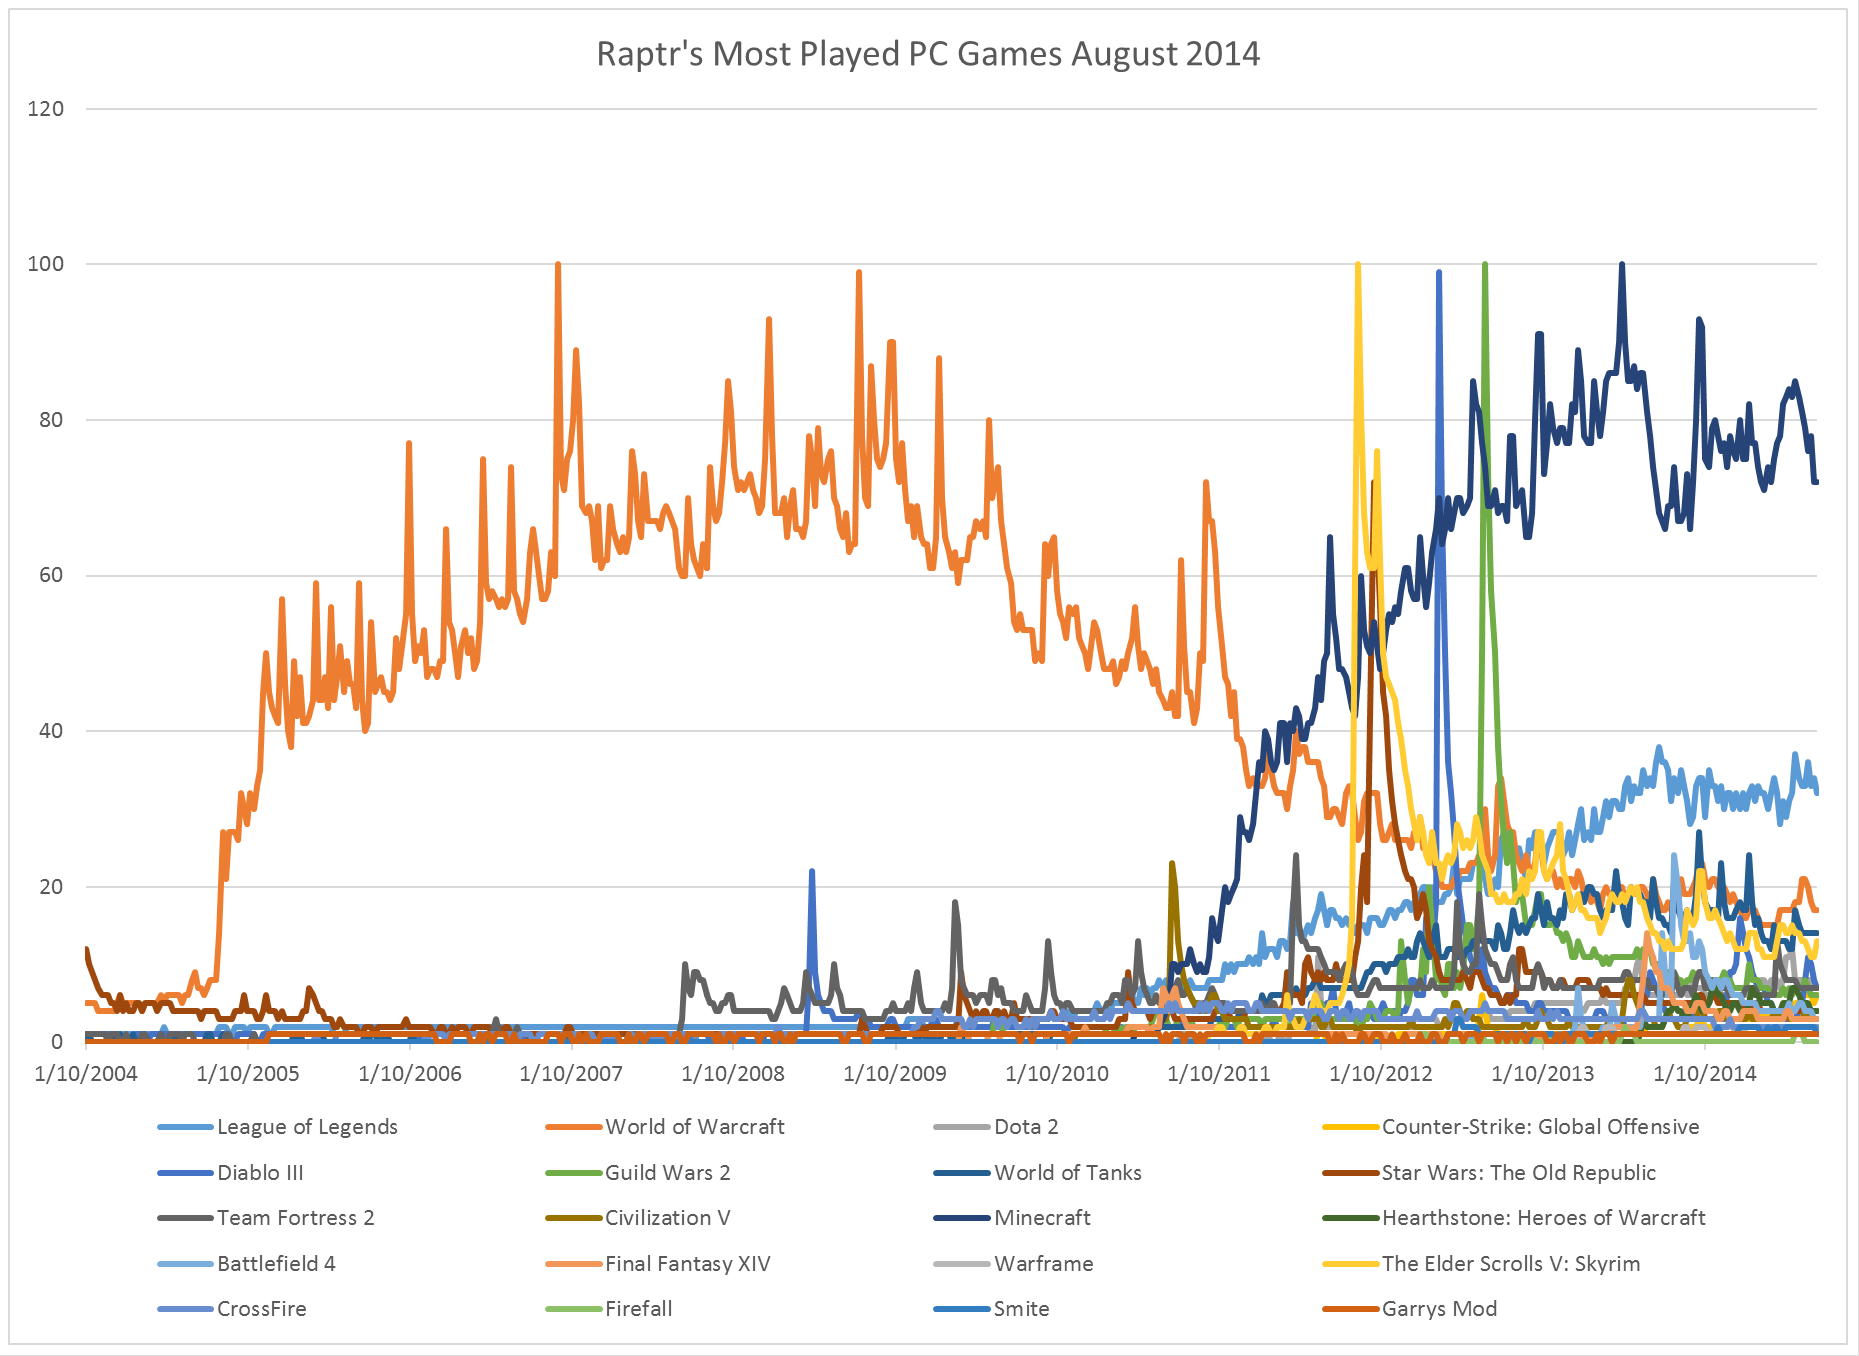 Raptr's Most Played PC Games August 2014